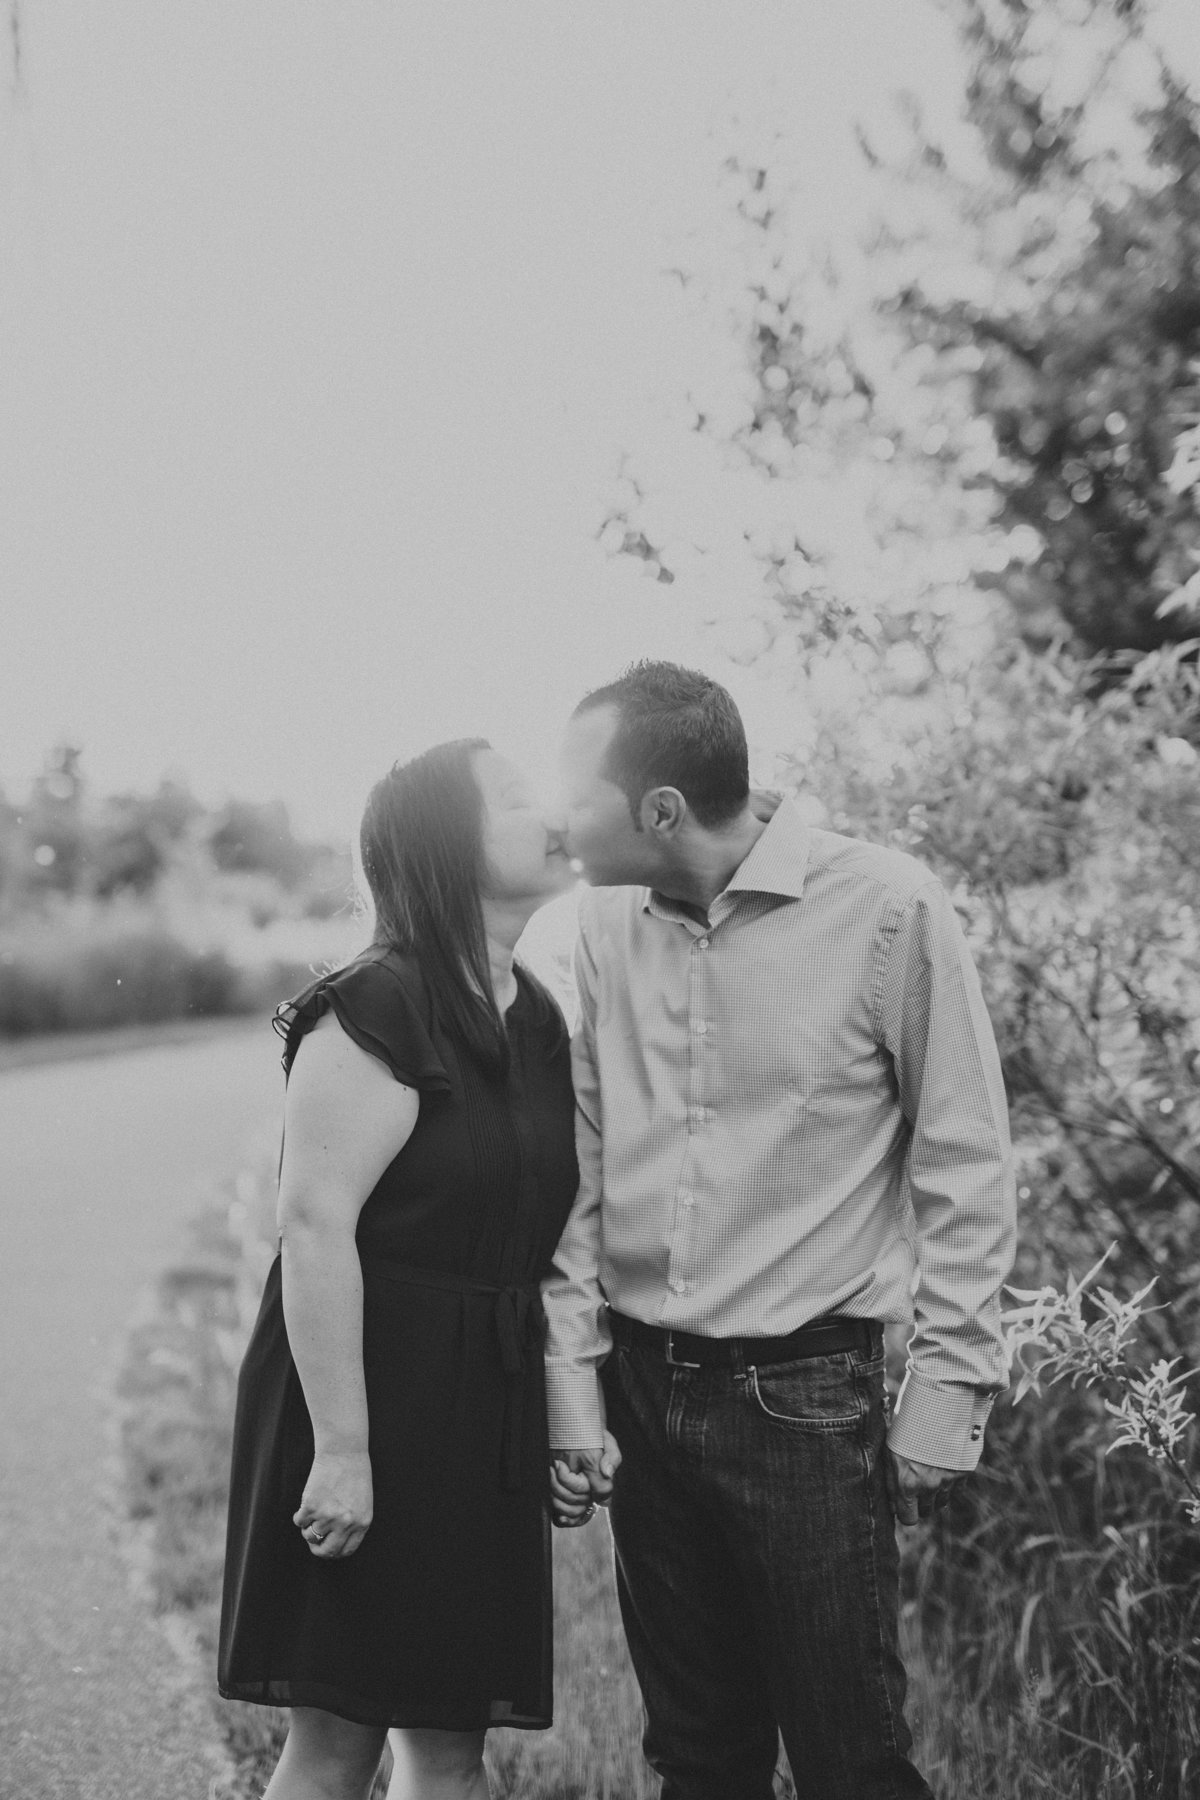 MikeAndDelphineEngaged_060717_WeeThreeSparrowsPhotography_226